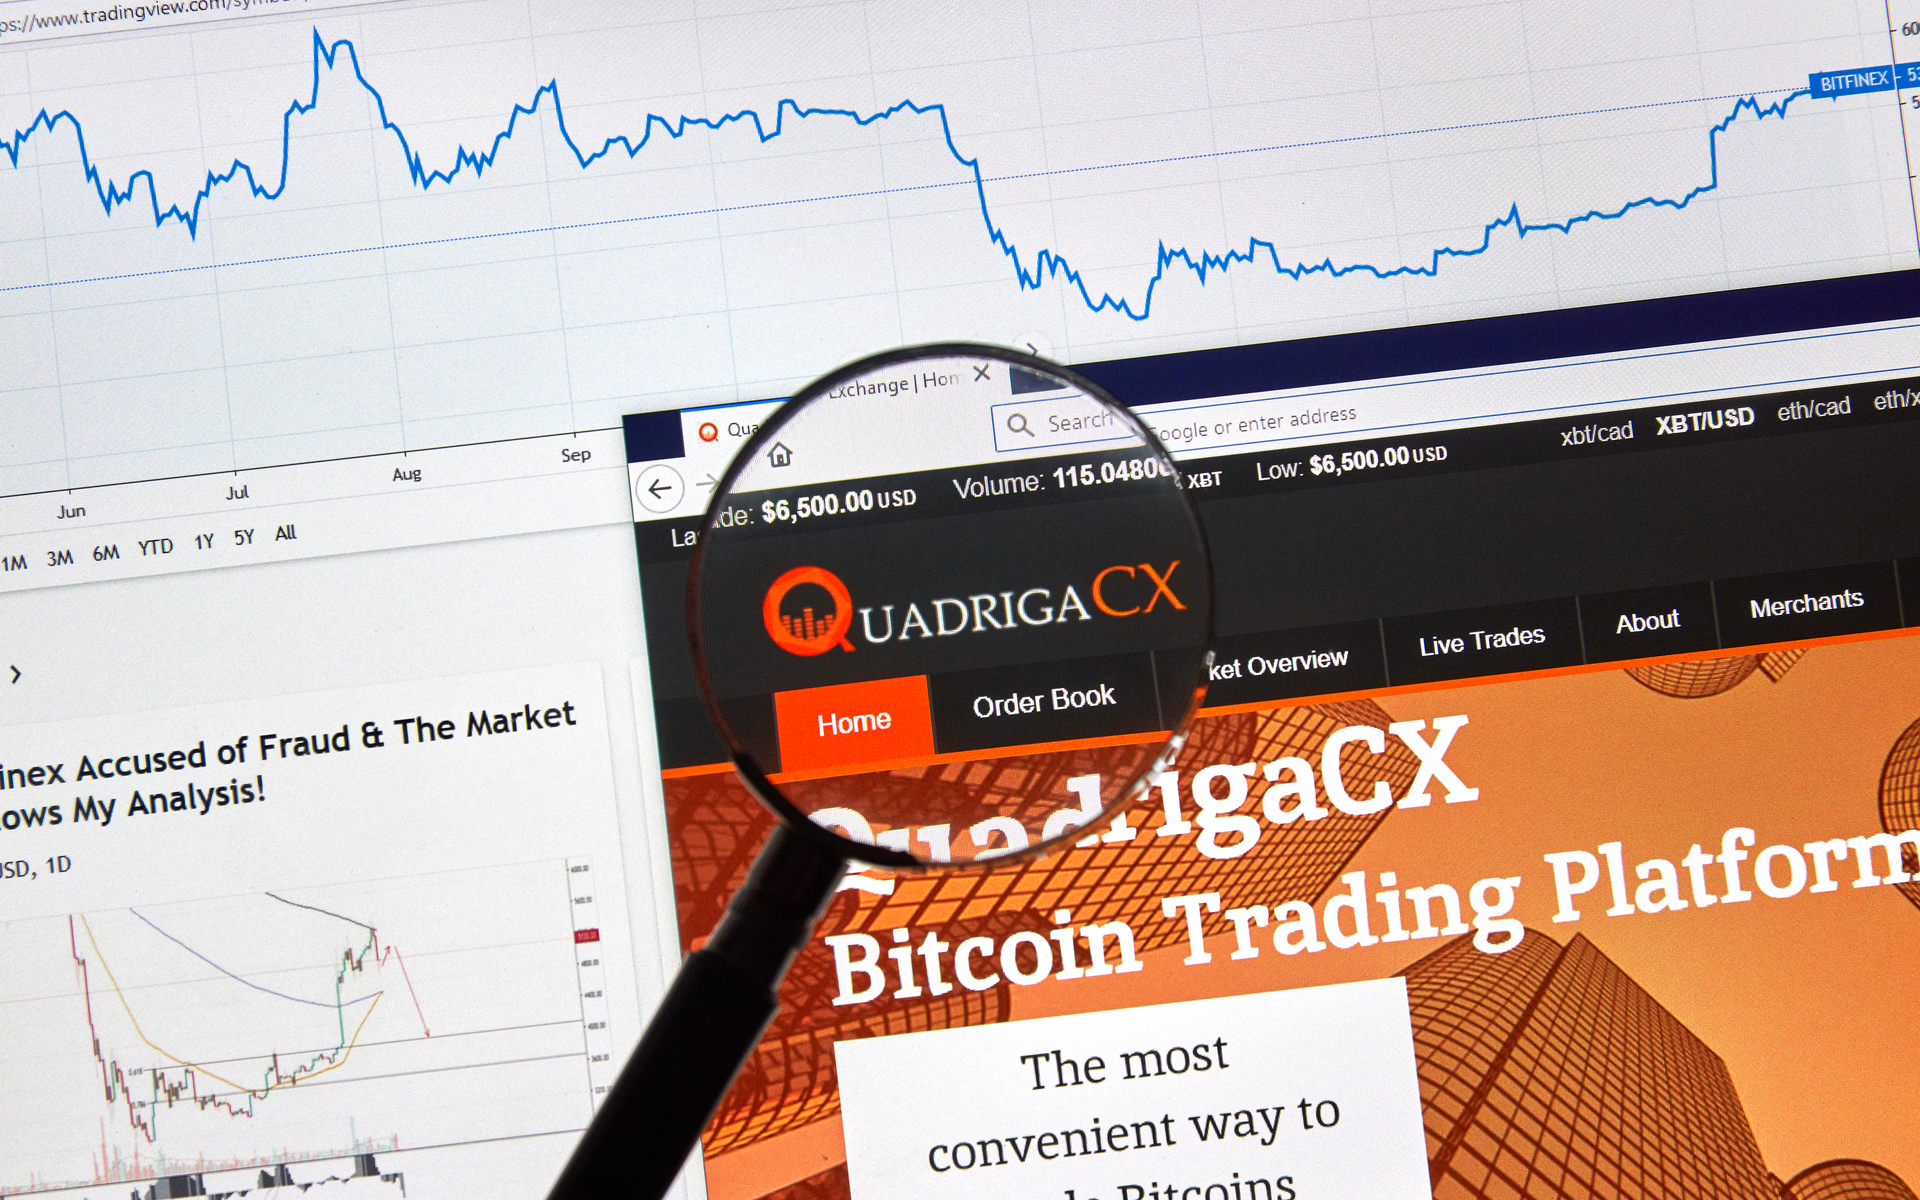 quadrigacx cryptocurrency exchange